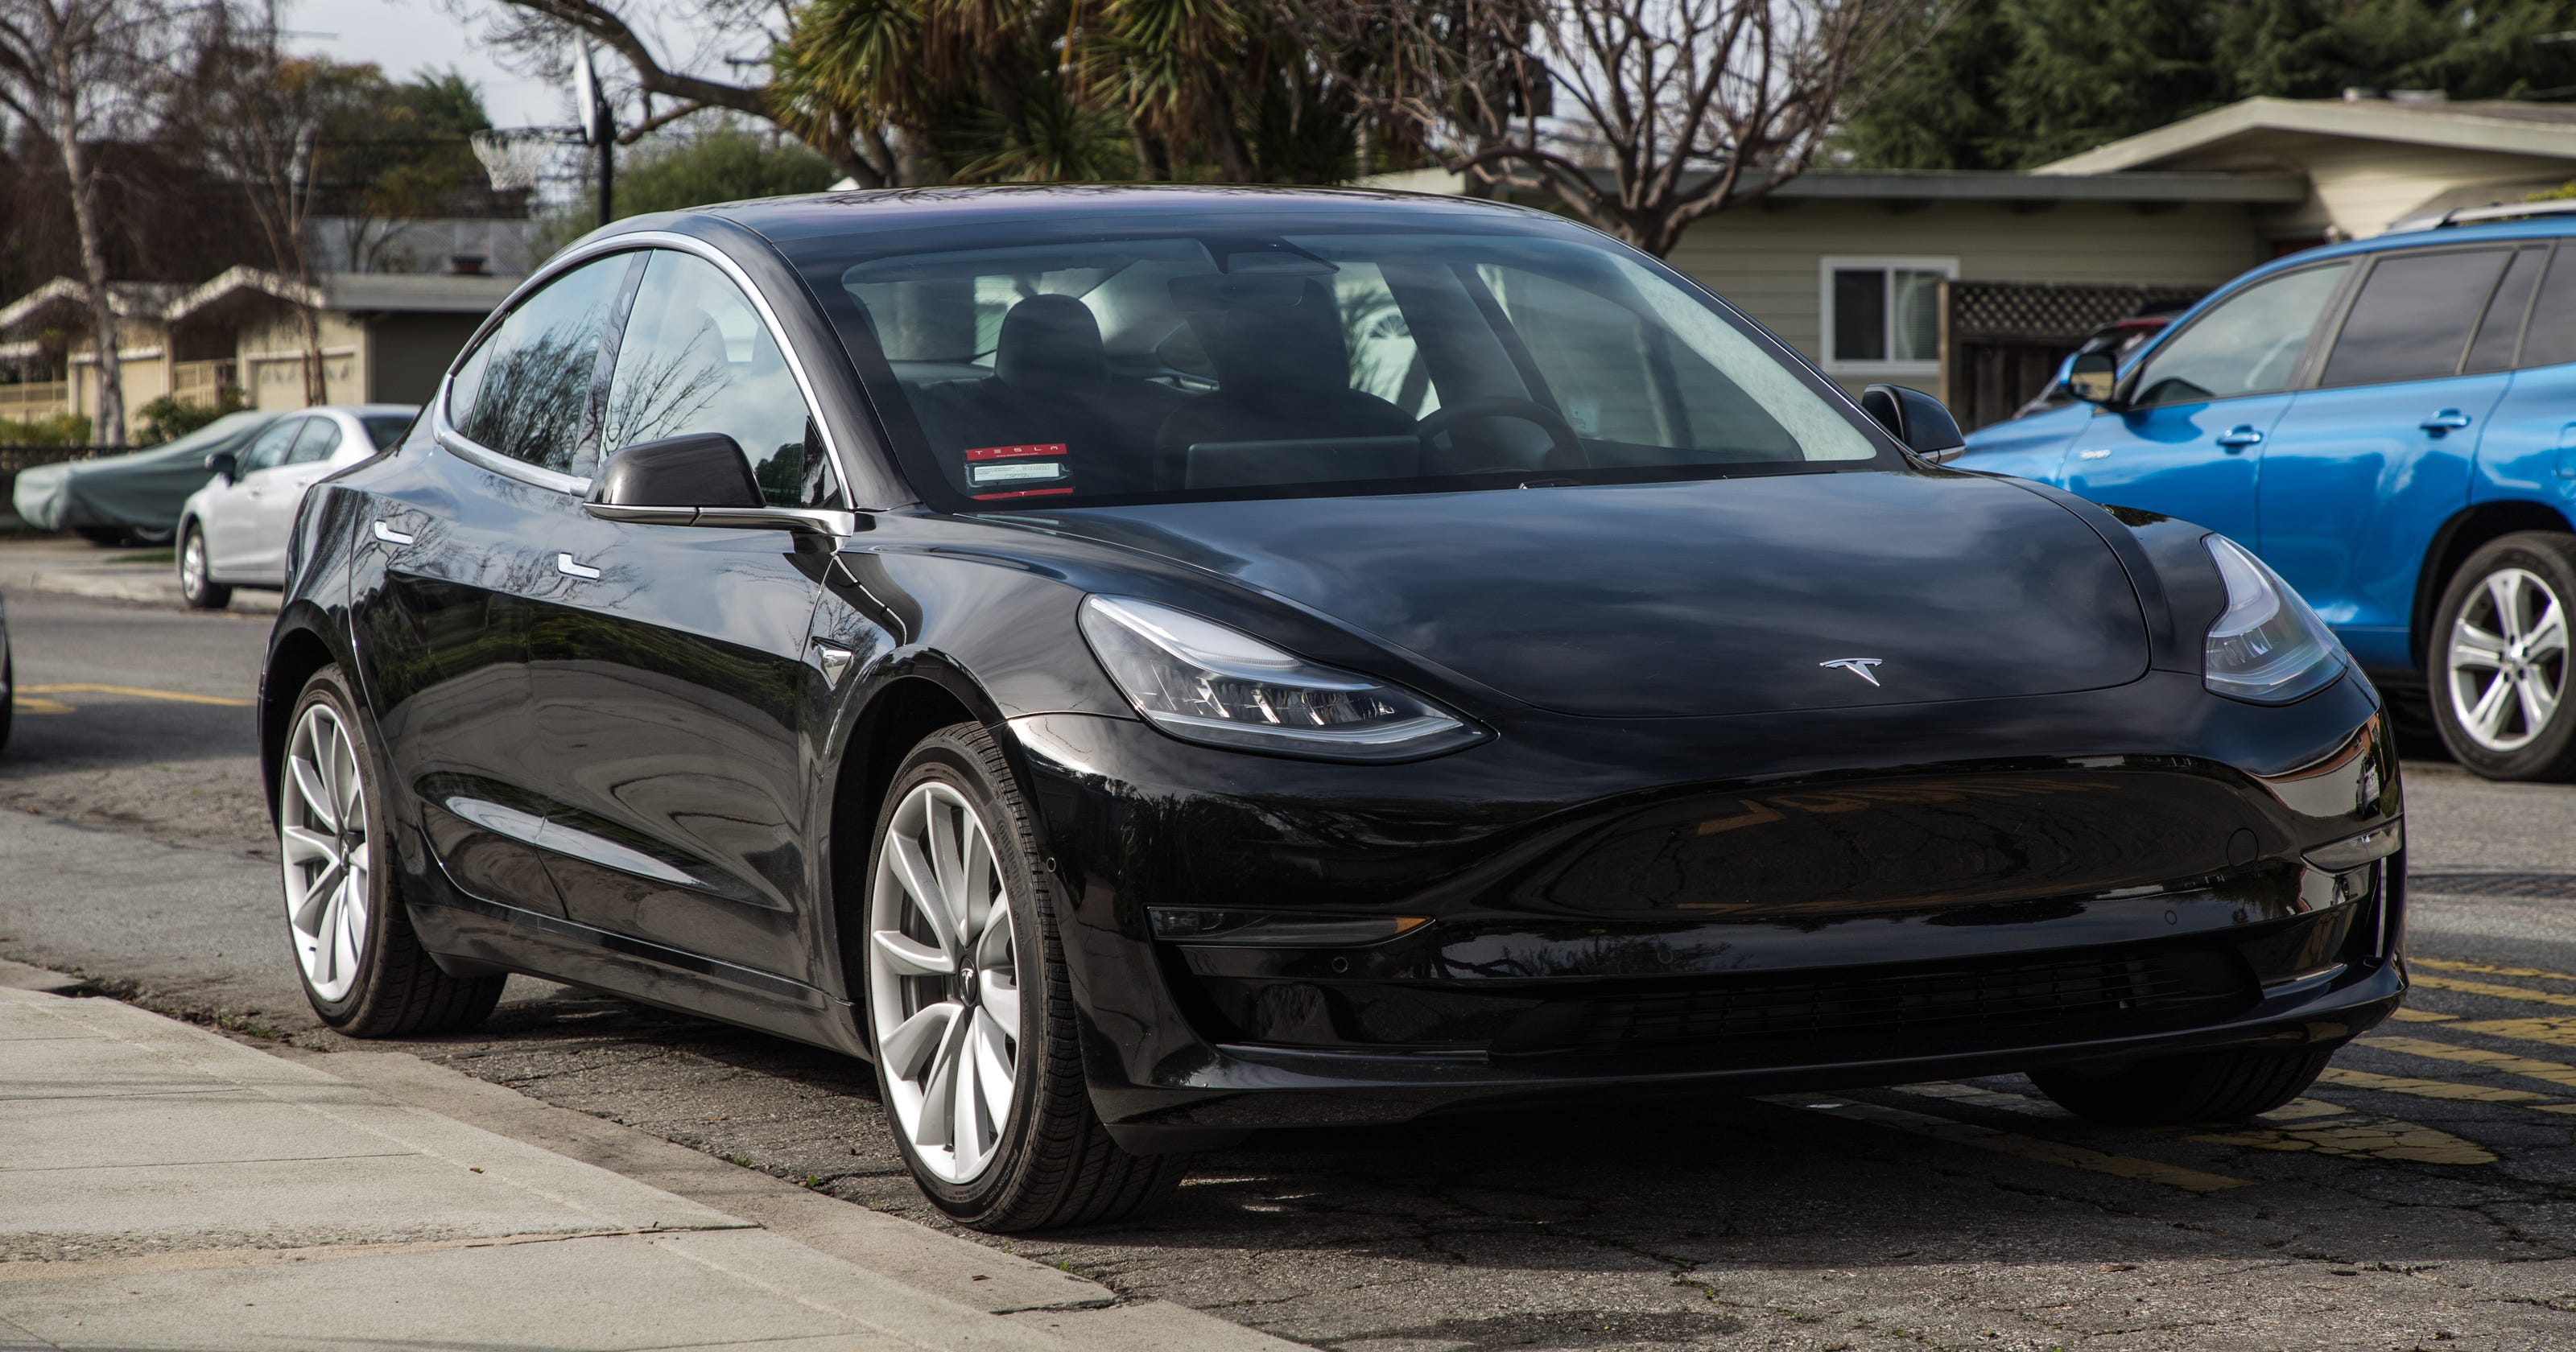 Tesla Model 3 Review We Rented One From A Brand New Owner It Automotive Short Circuit That May Cause Recurring Dead Battery Impressed